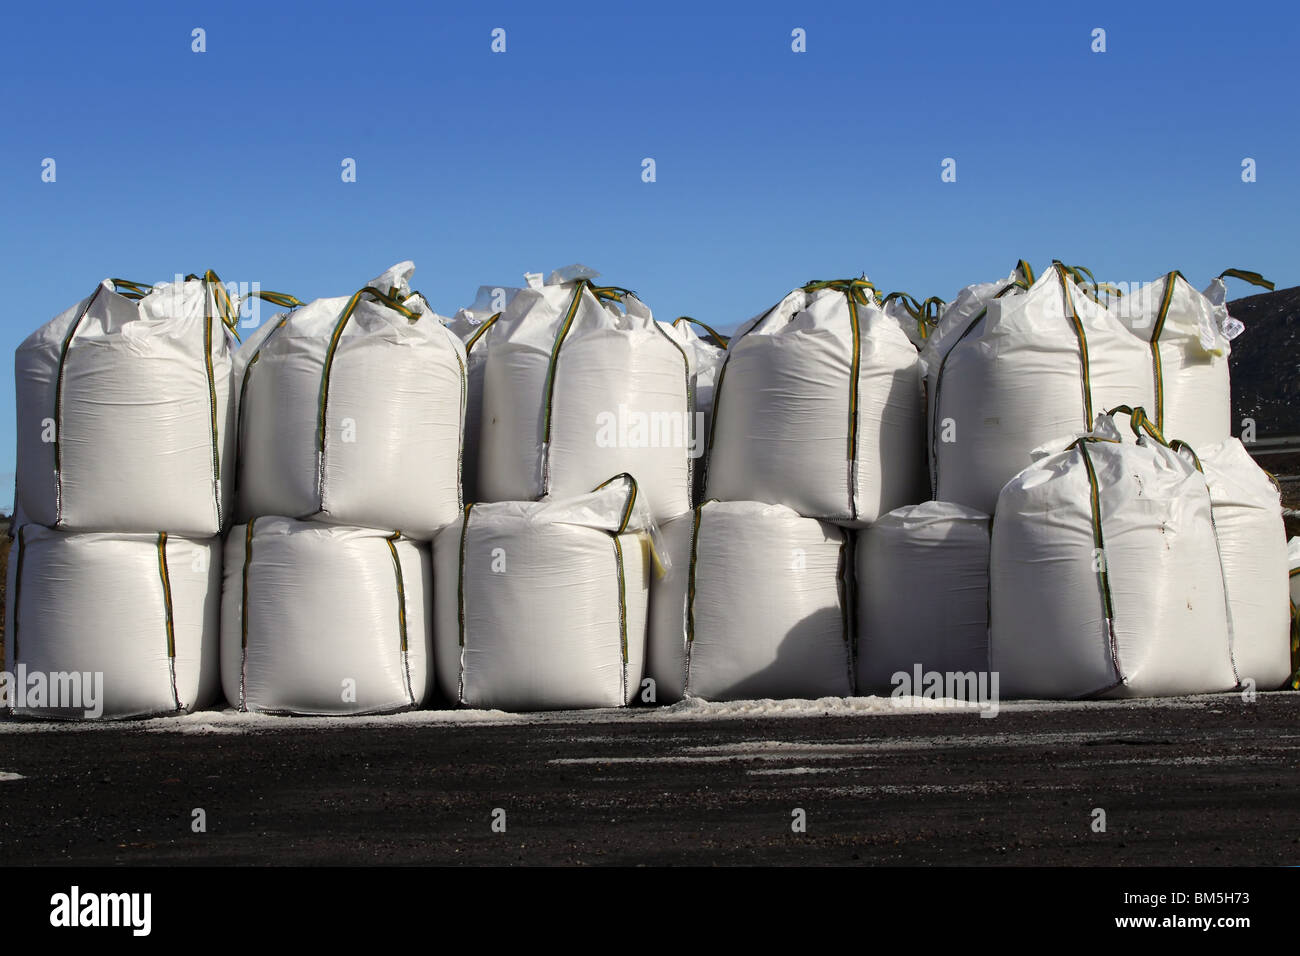 salt big bags sacks stacked rows for iced roads blue sky - Stock Image